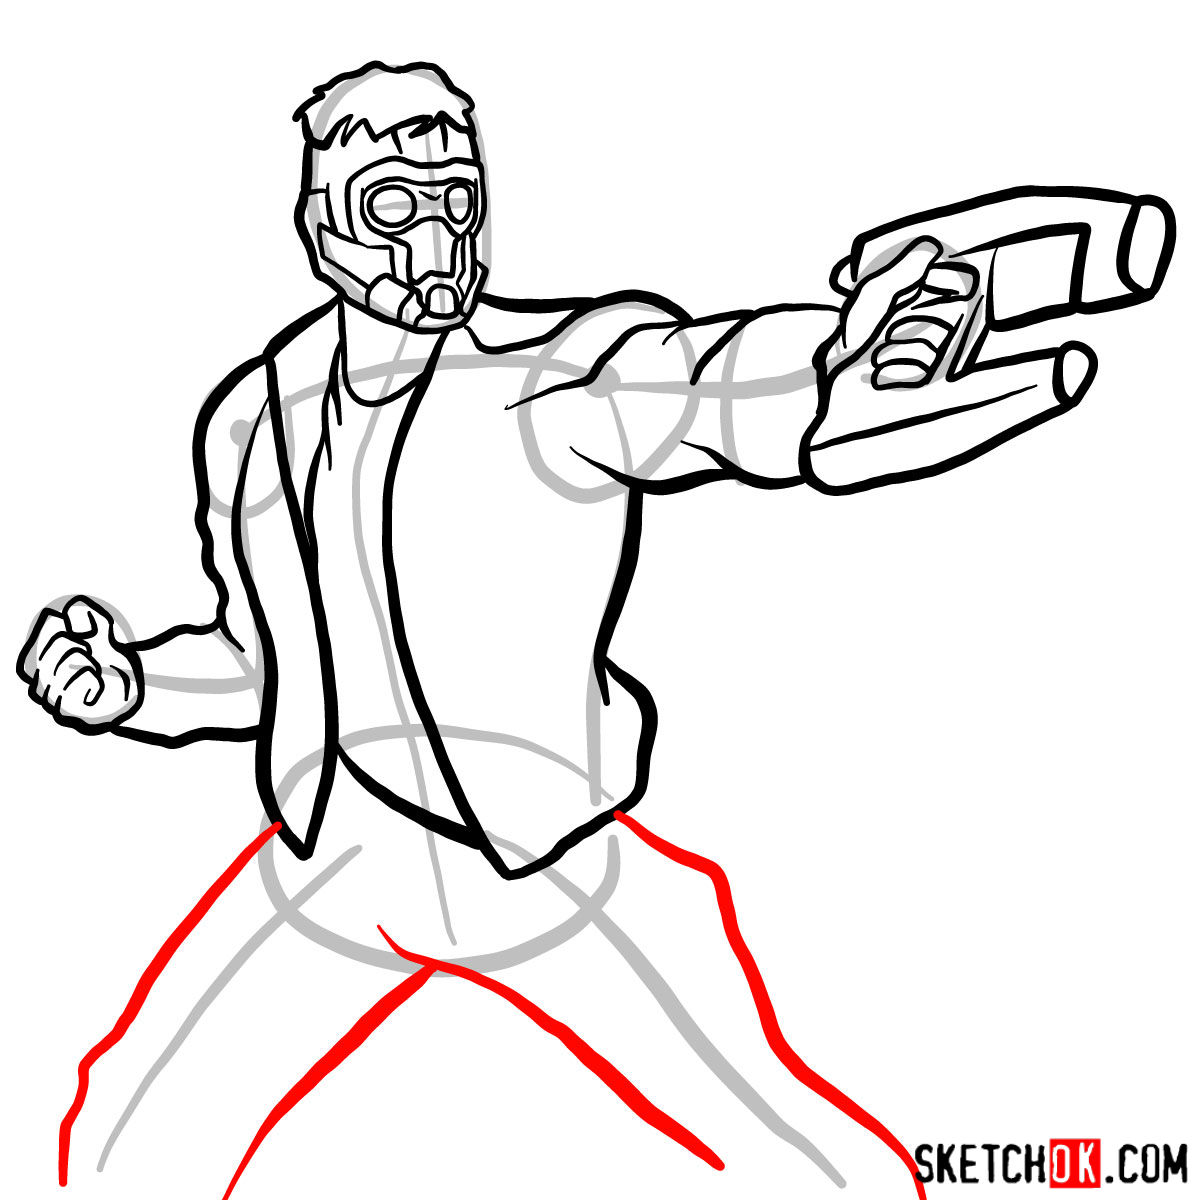 How to draw Star-Lord from Guardians of the Galaxy - step 12